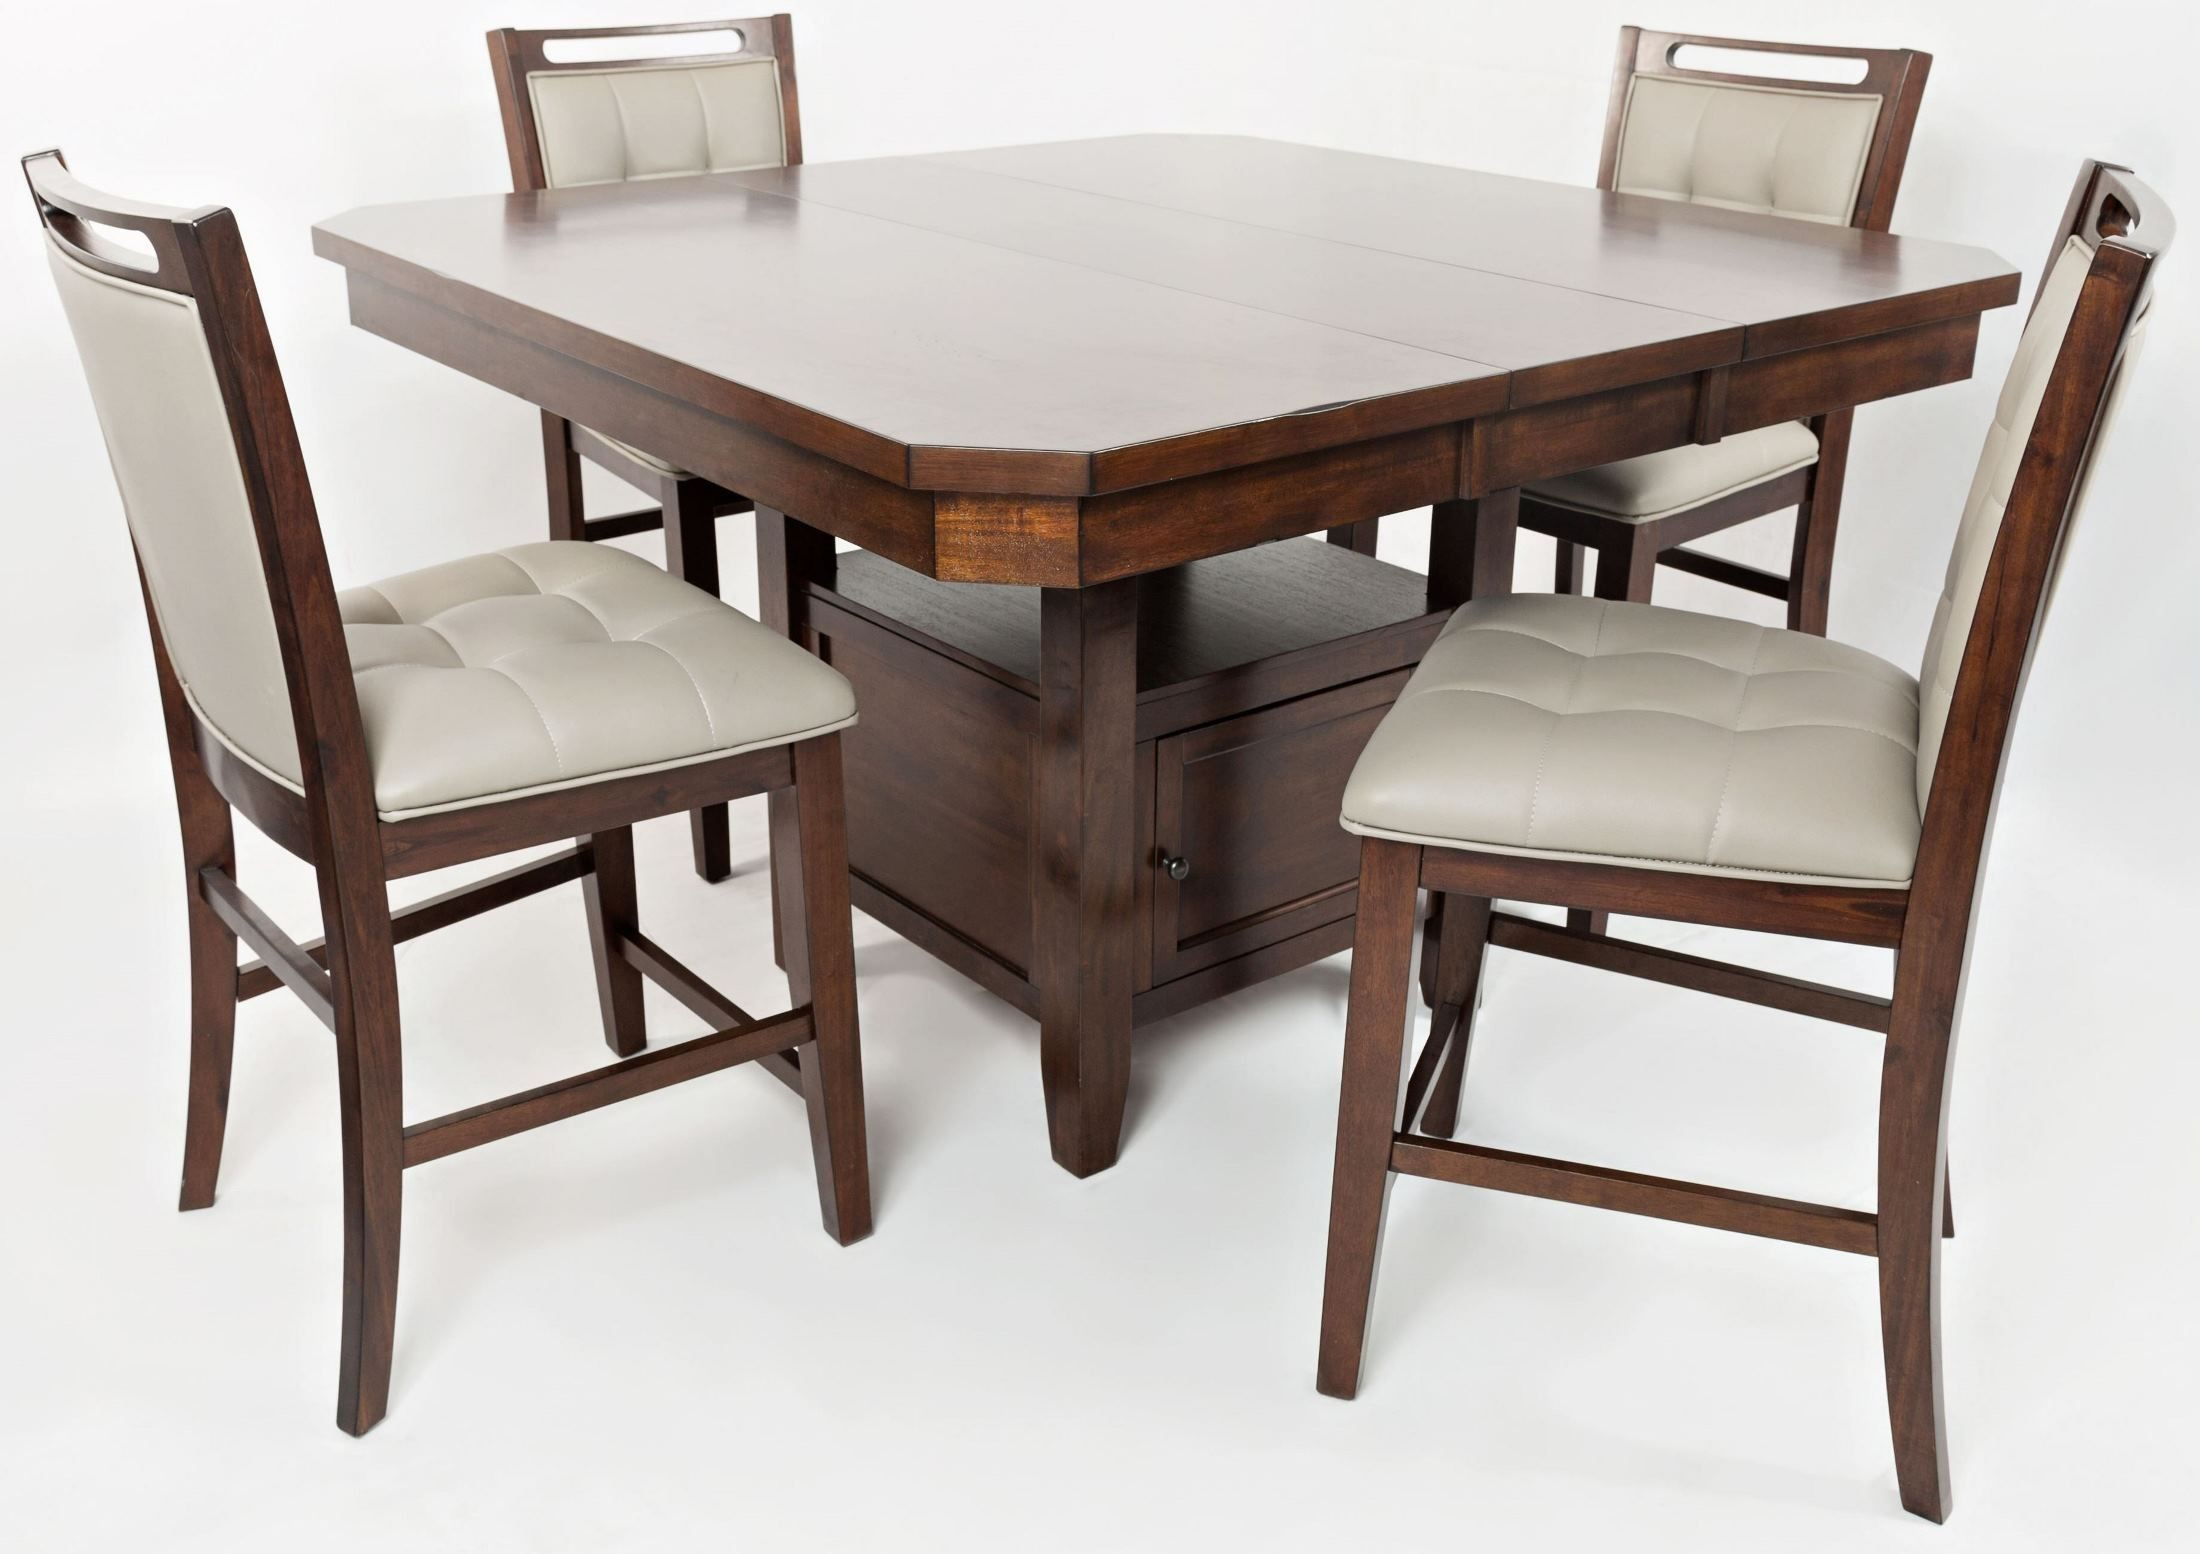 Manchester Storage Adjustable Dining Table